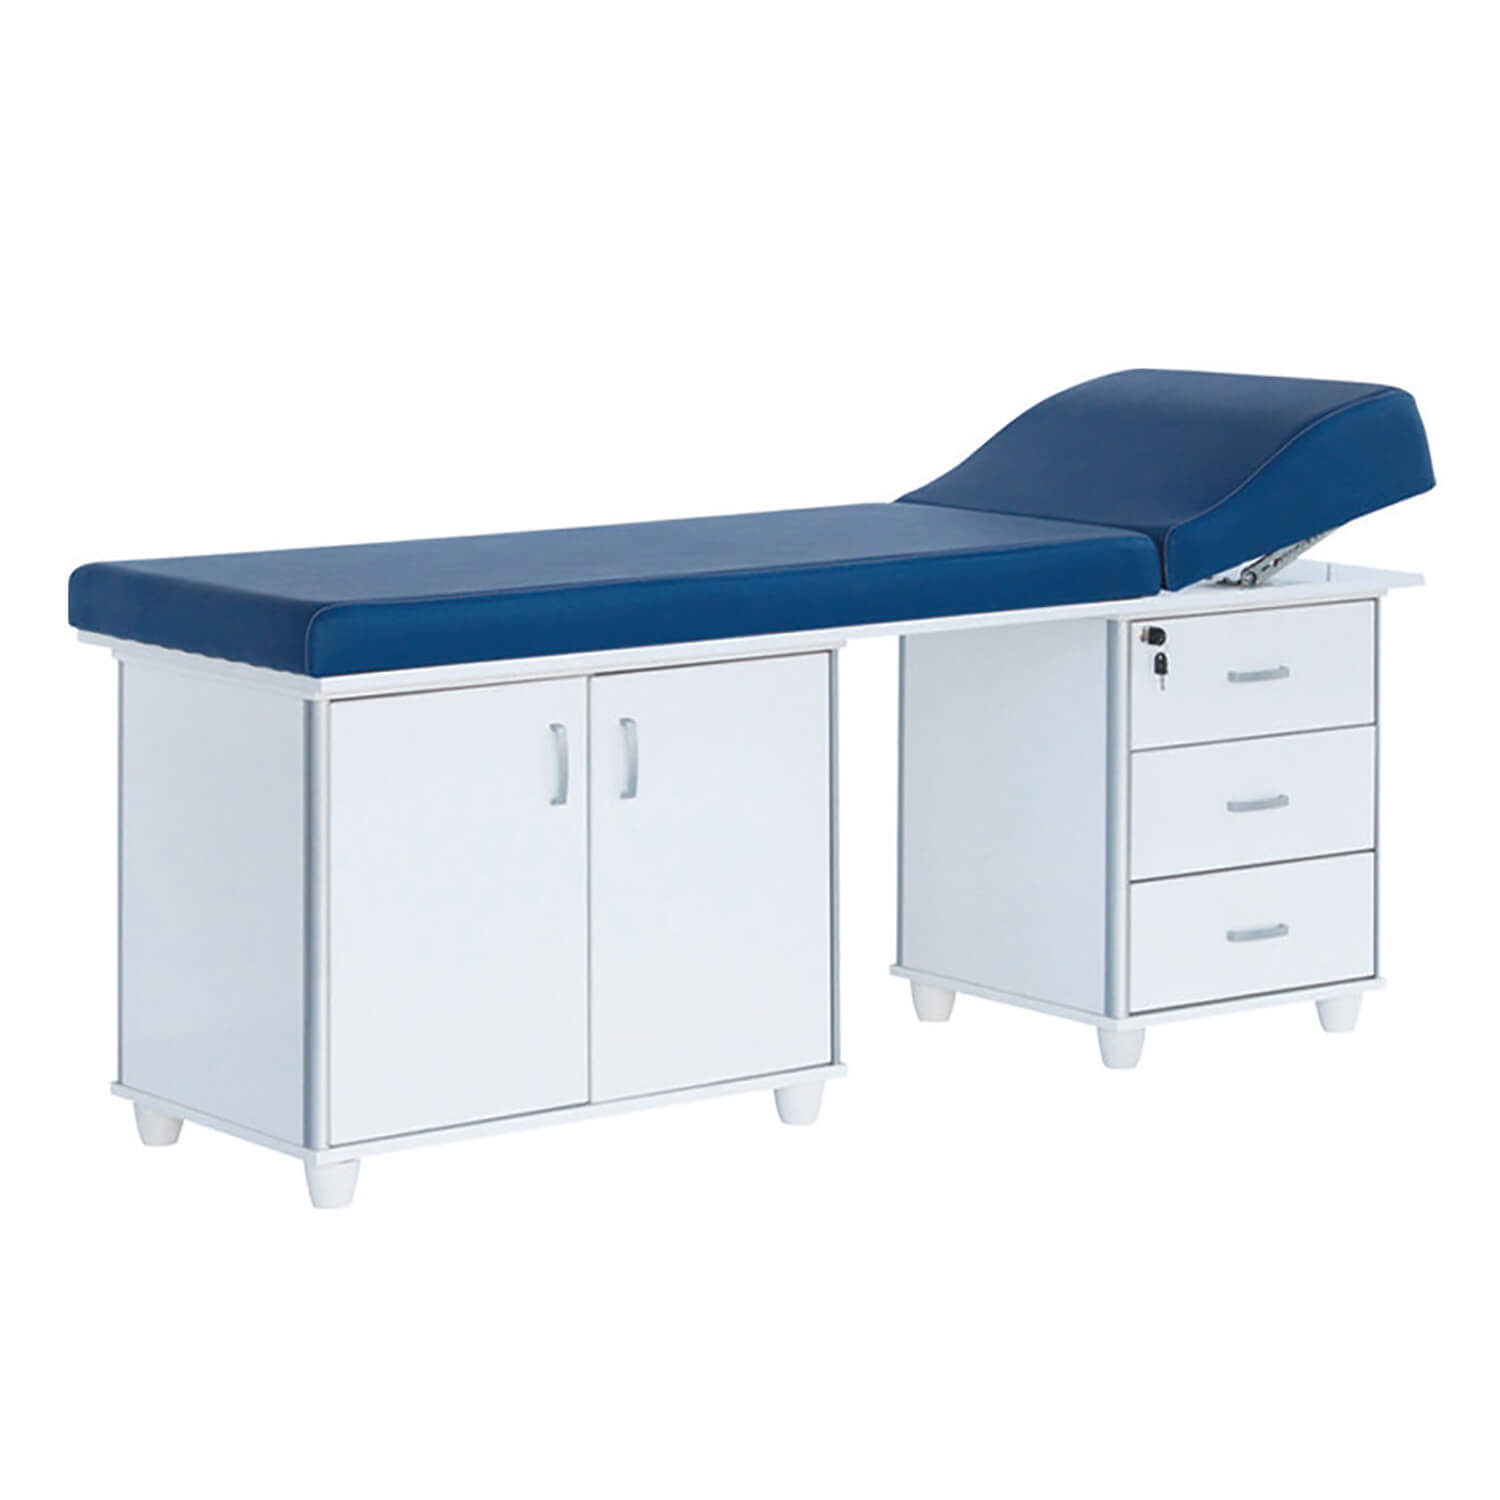 Examination Couch with Drawers and Cabinets